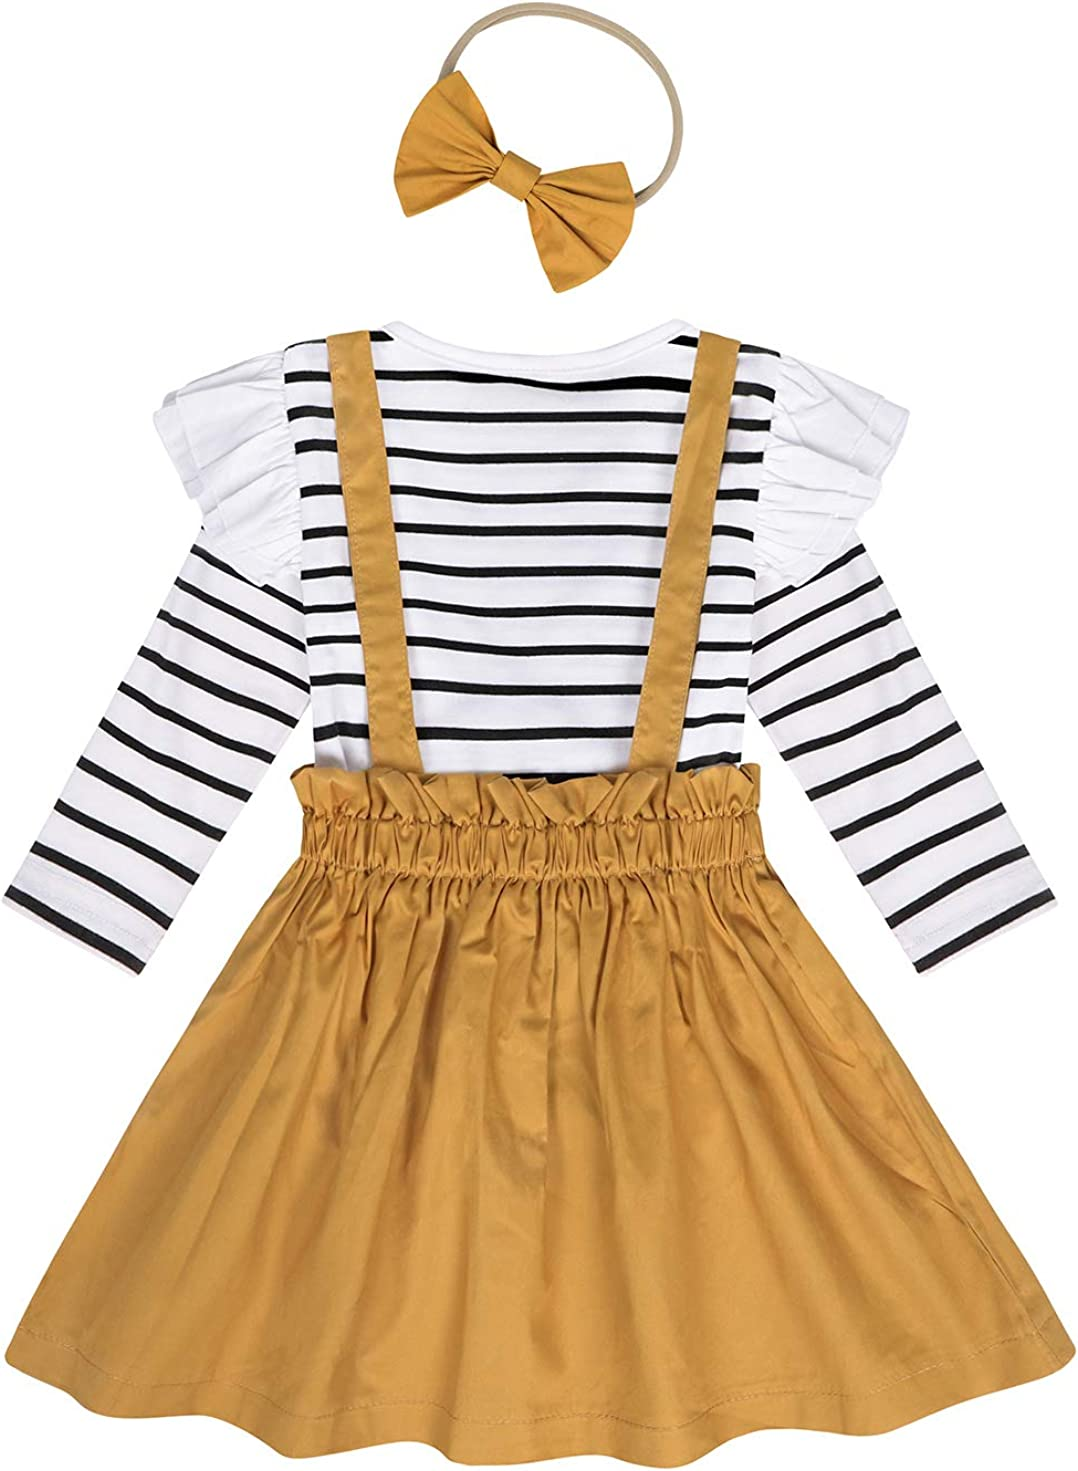 AmzBarley Toddler Girls Dress Set Ruffle Stripe T-Shirt Solid Color Overall Suspender Dress Button Strap Tutu Skirts Outfits